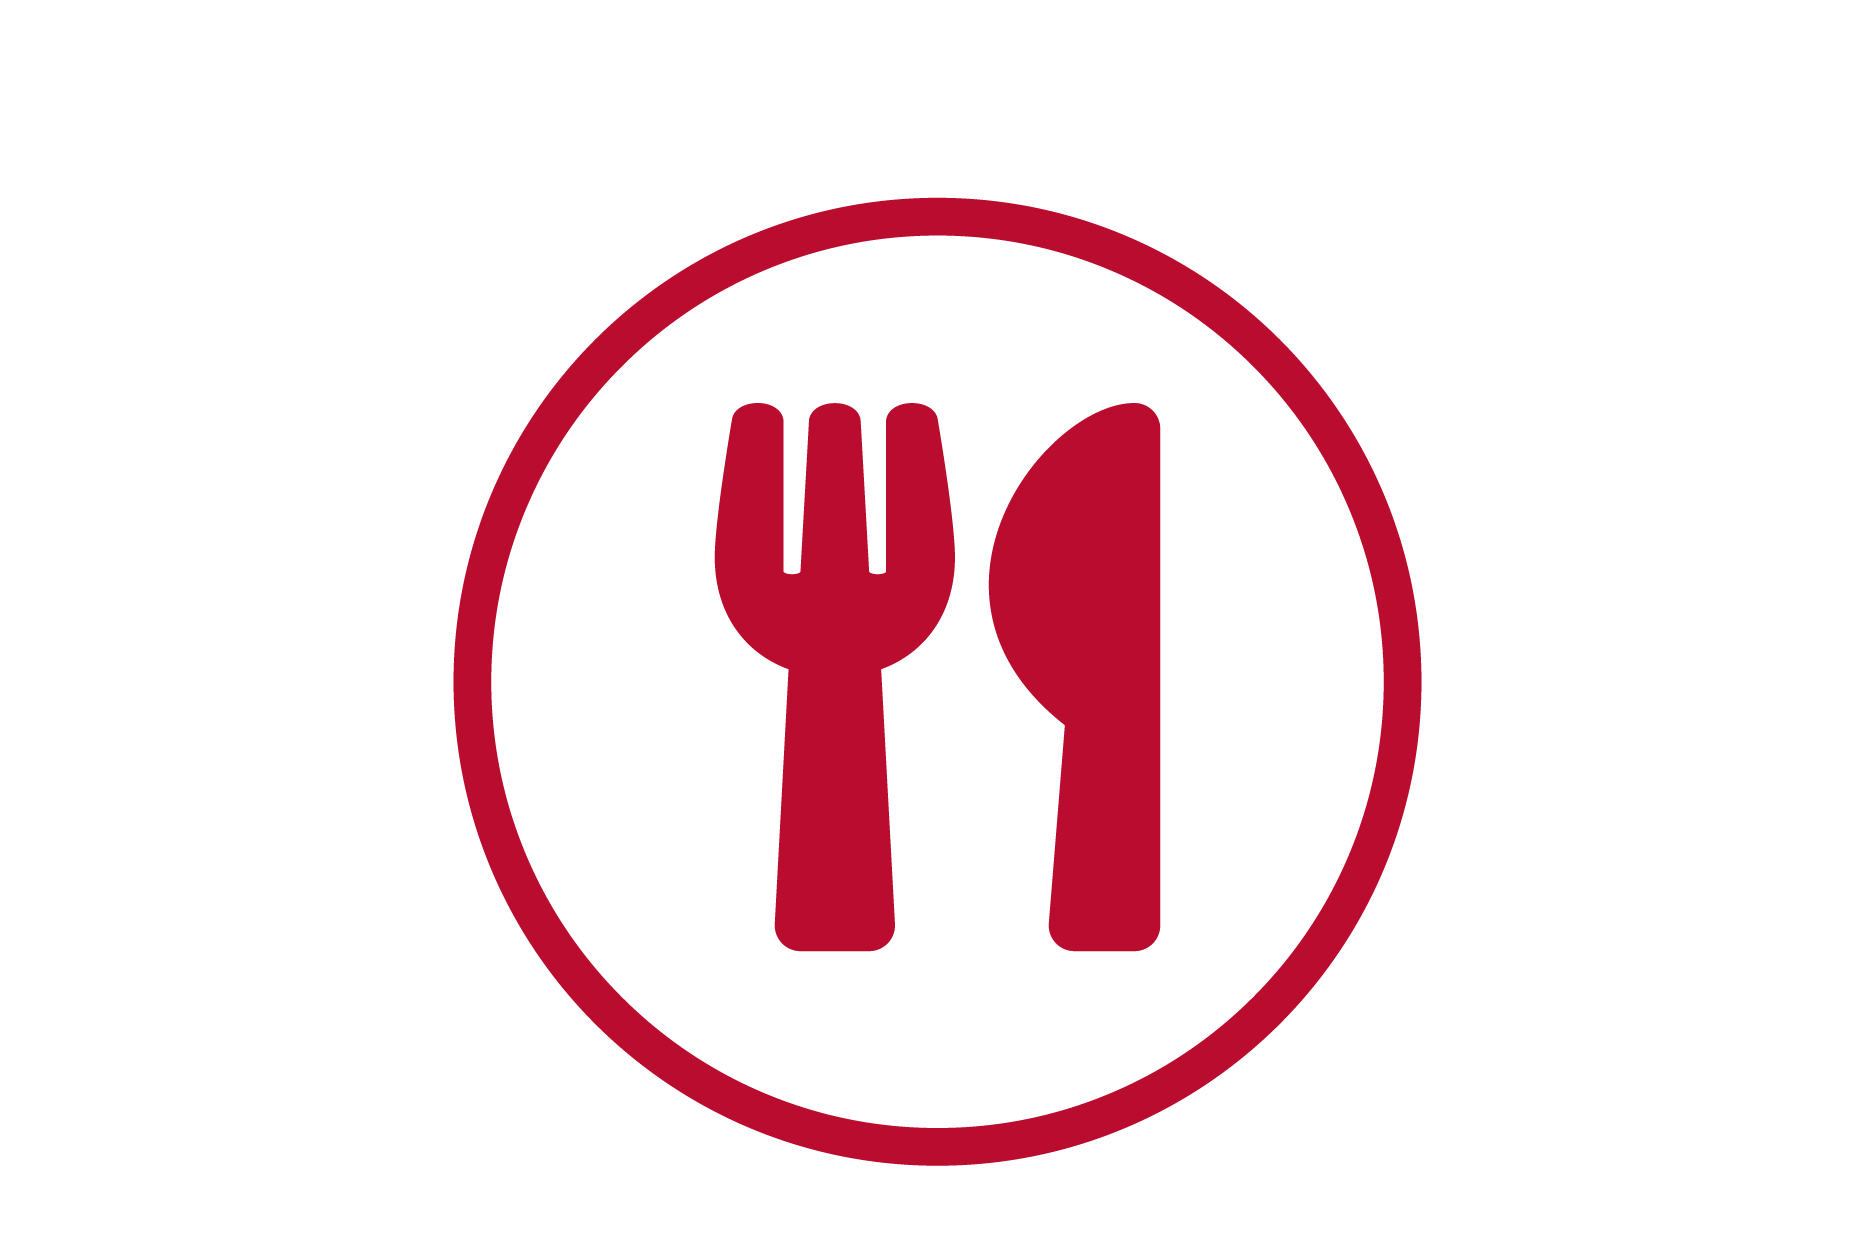 Icon of fork and knife